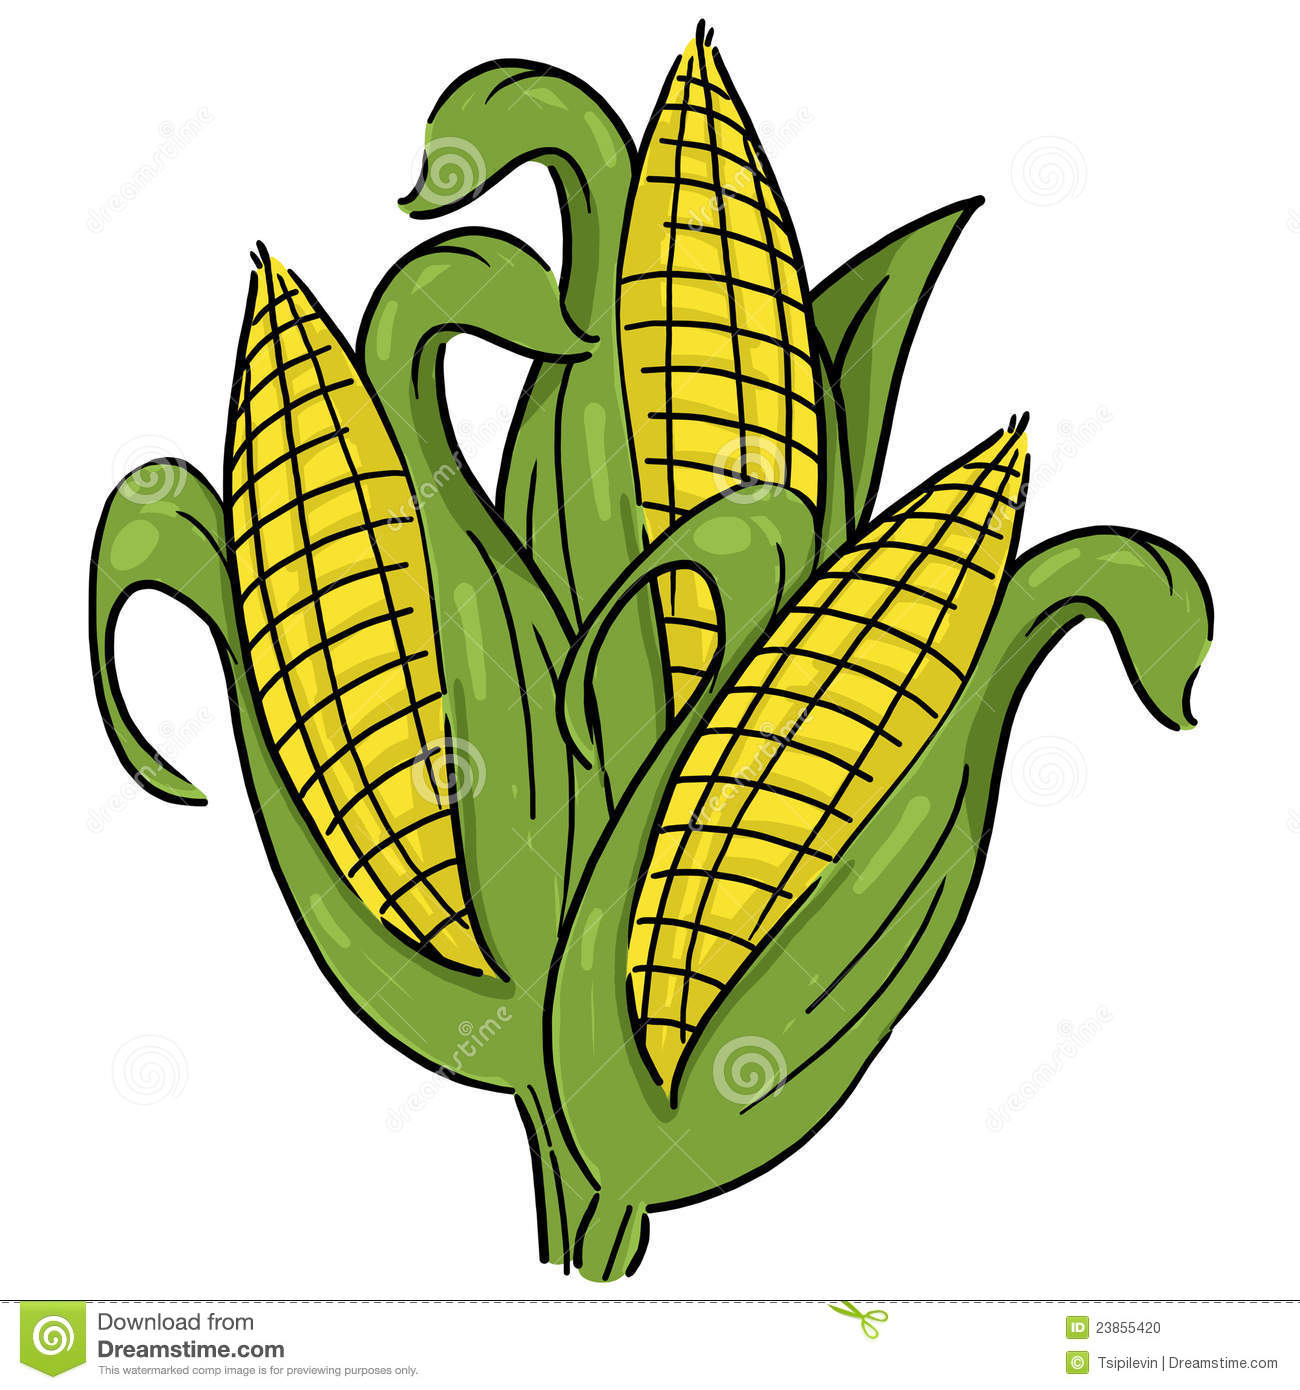 Corn clipart #10, Download drawings